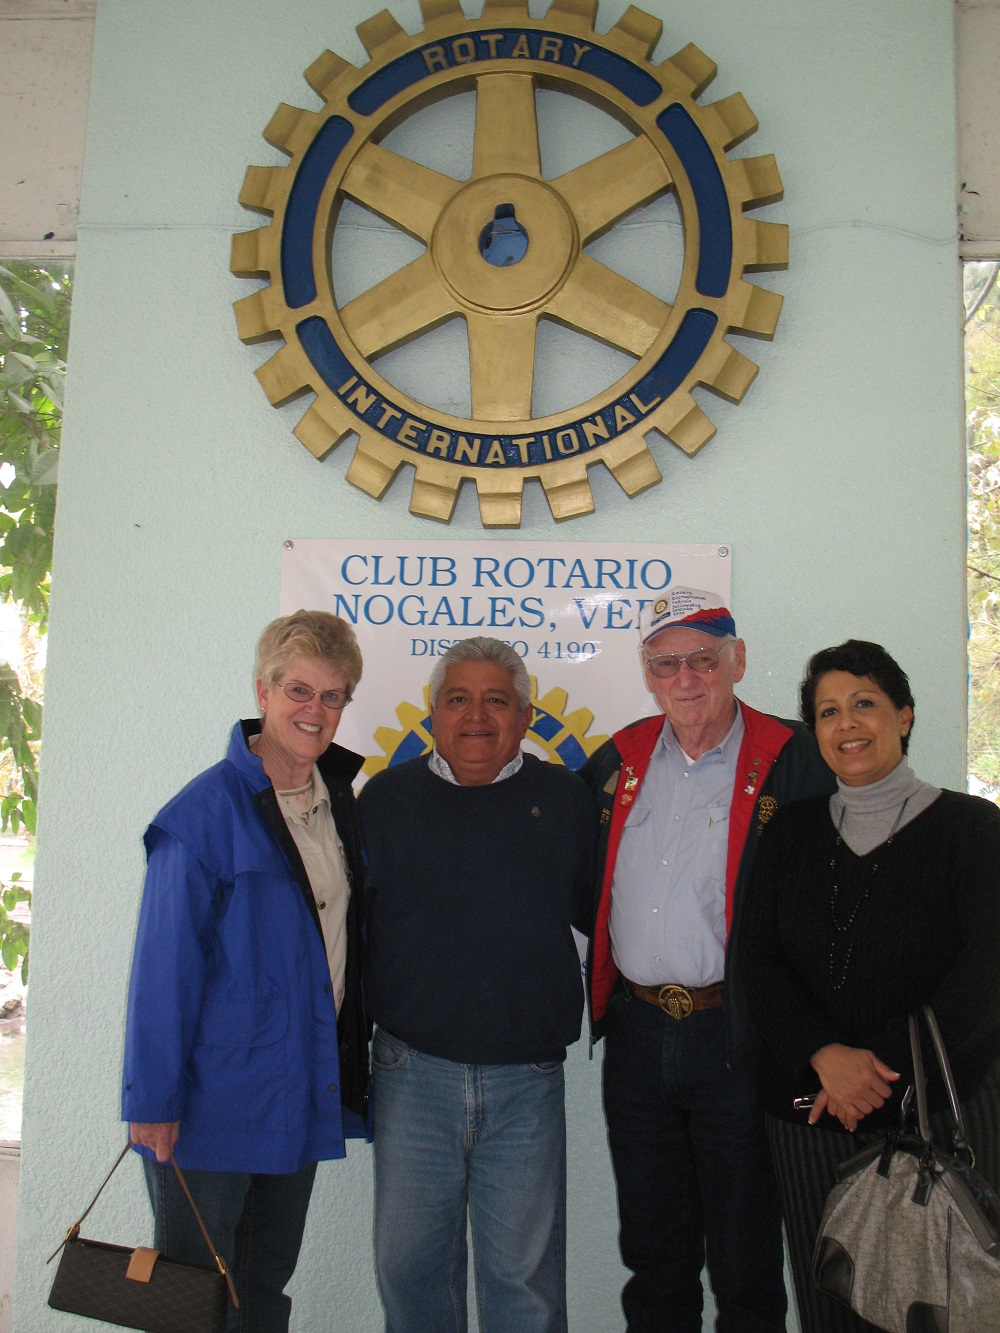 Rotary ambulance transfer - Nogales Mexico - Gordon and Carol Kennedy with Mexican Rotarians Guillermo Olivaria and her name is Lily Guterrez - Photo Courtesy Gordon and Carol Kennedy